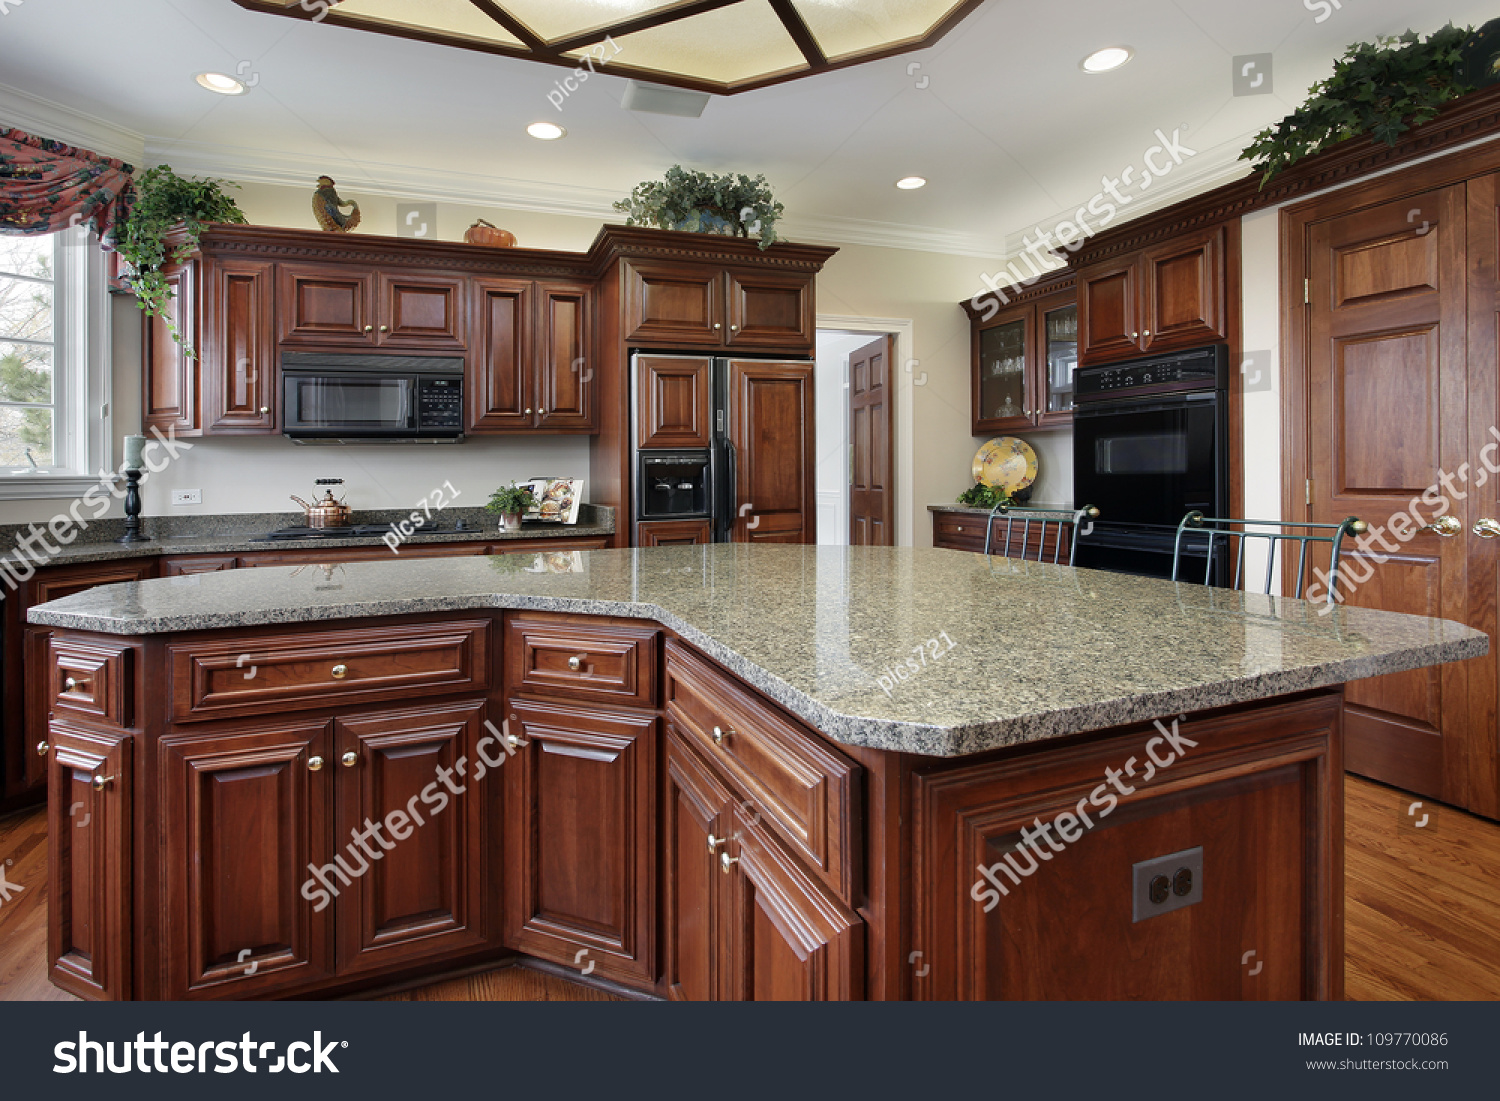 Kitchen Center Island Kitchen In Luxury Home With Large Center Island Stock Photo